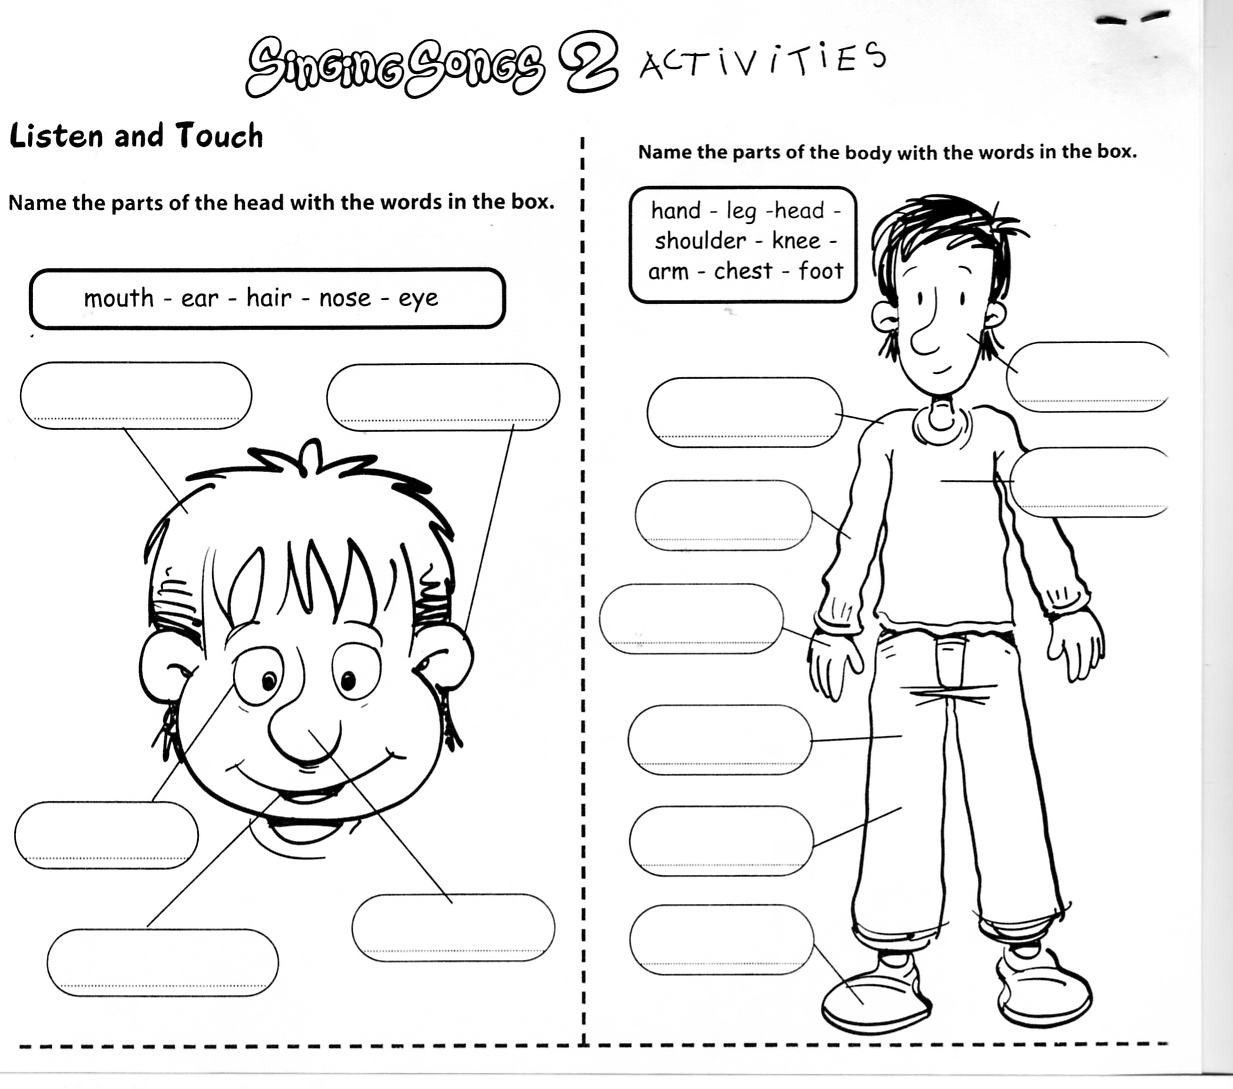 Printables Esol Worksheets esol courses worksheets esl resources for kids learning english printable ideas about lbartman com